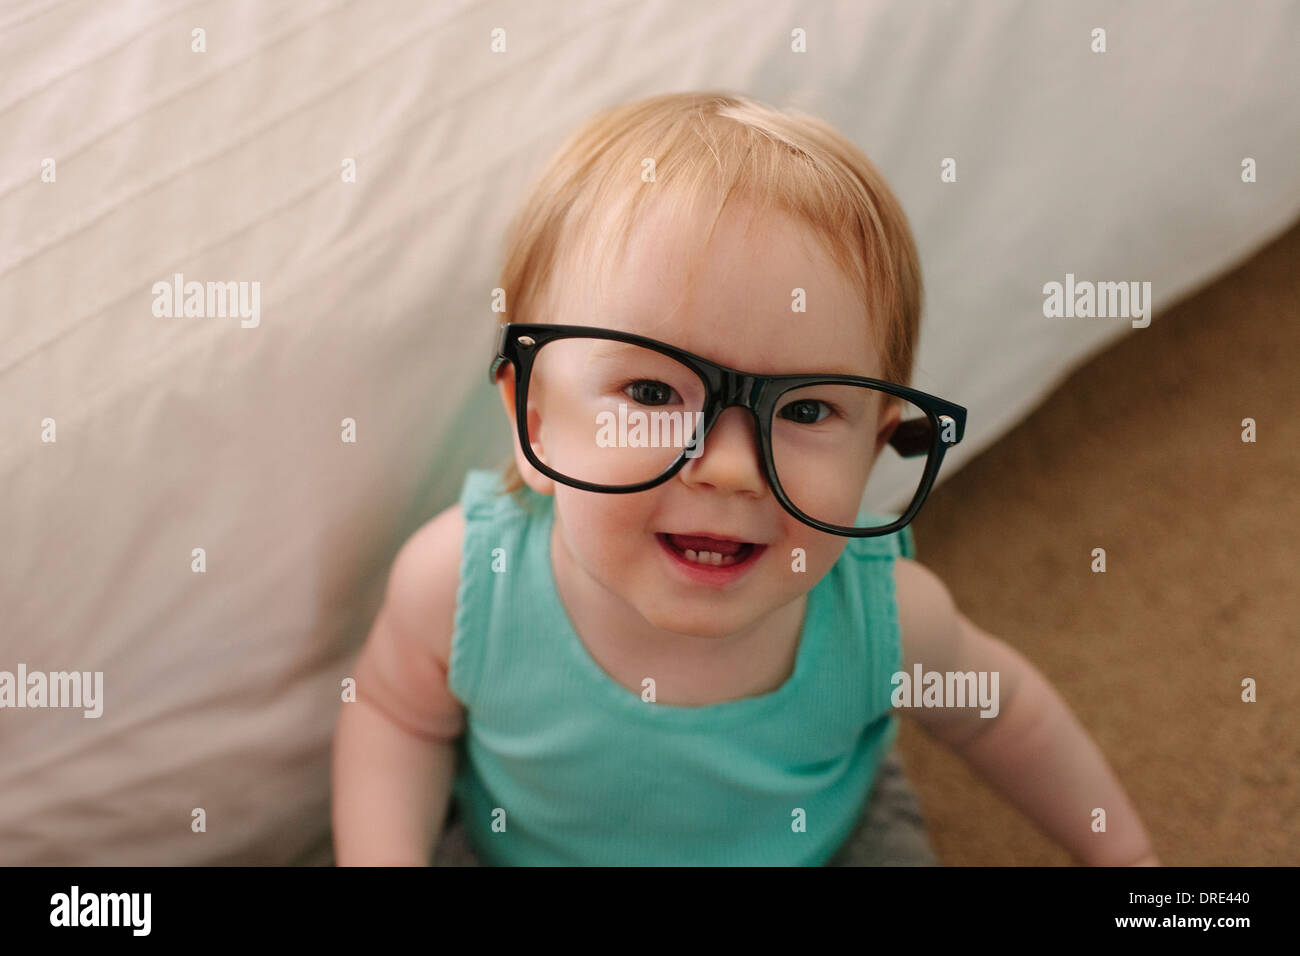 Young baby wearing glasses Stock Photo